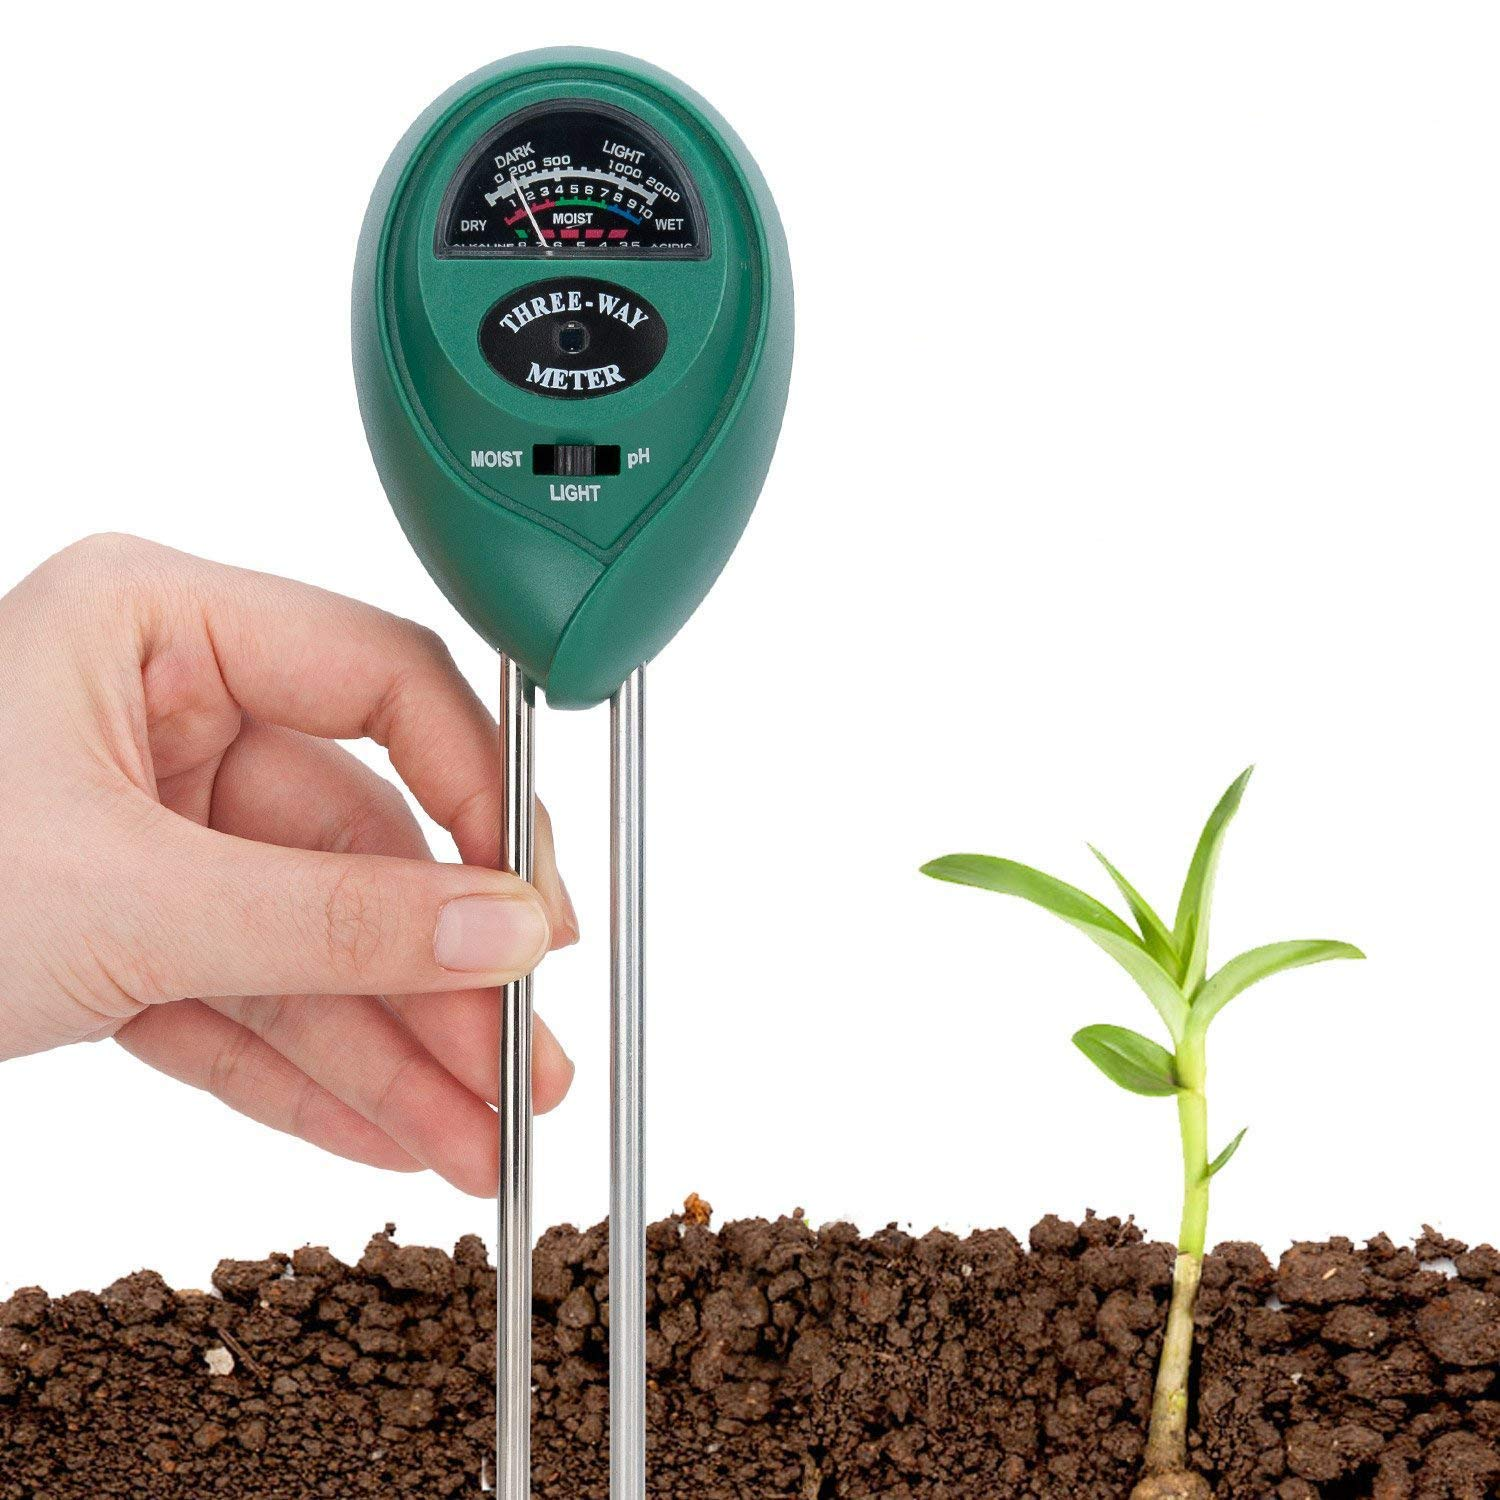 Soil Tester Covvy 3 in 1 Water Moisture Meter Acidity Humidity Light Probe Test Kit Gardening Tools for Home Lawn Farm Indoor or Outdoor Plant Care LYCHEE LIMITED